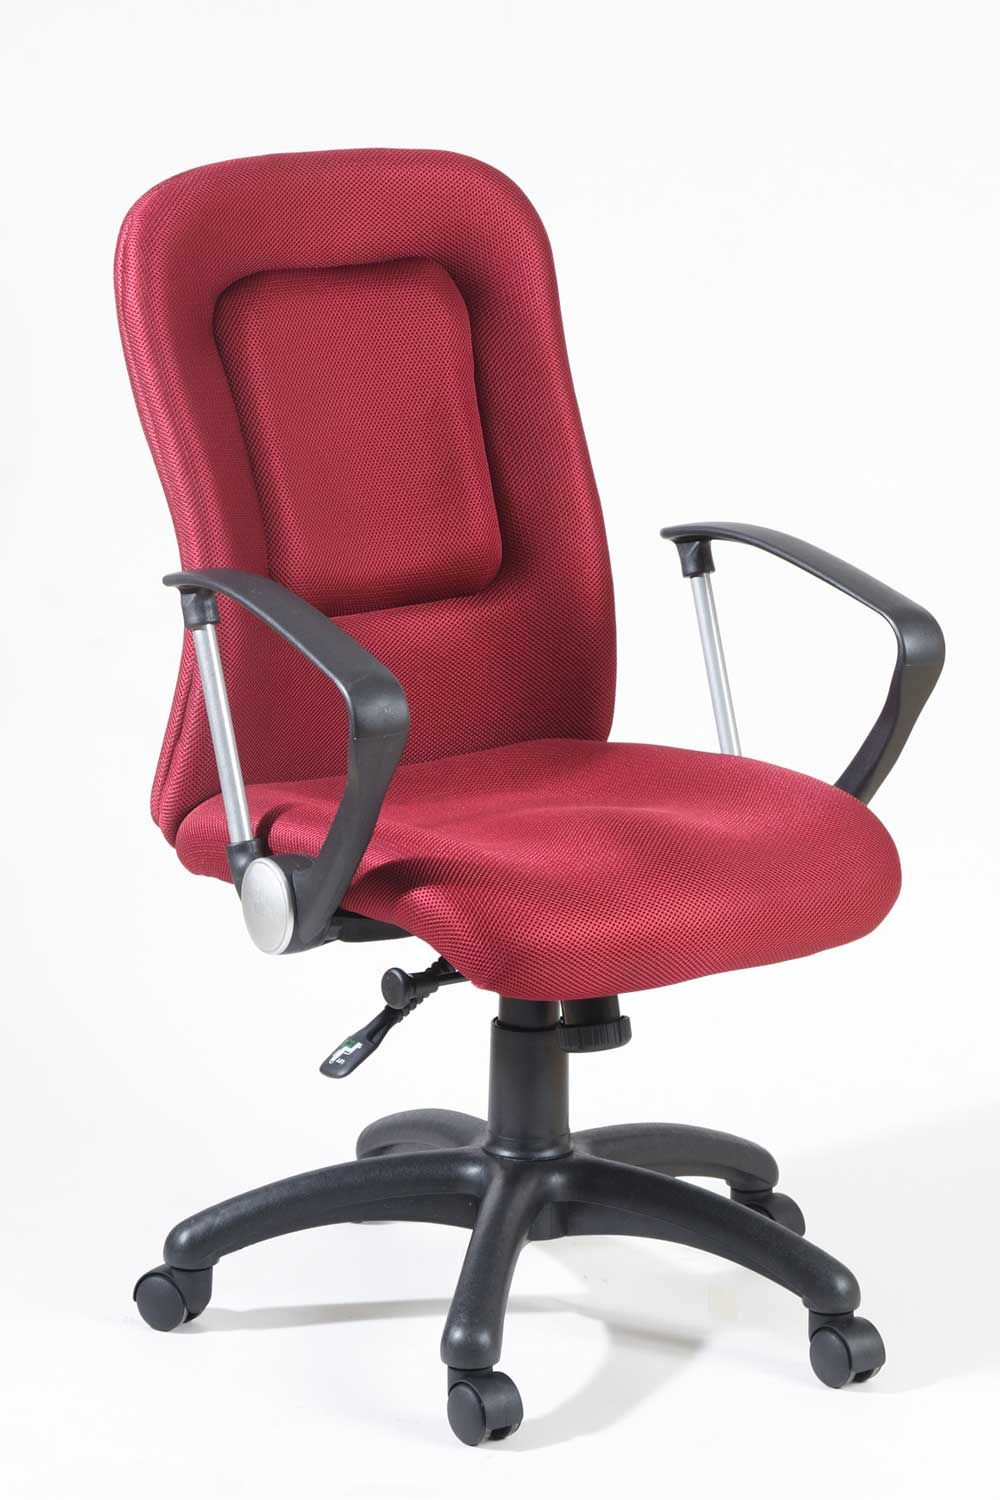 Red Contemporary And Ergonomic Office Chair For Bad Back